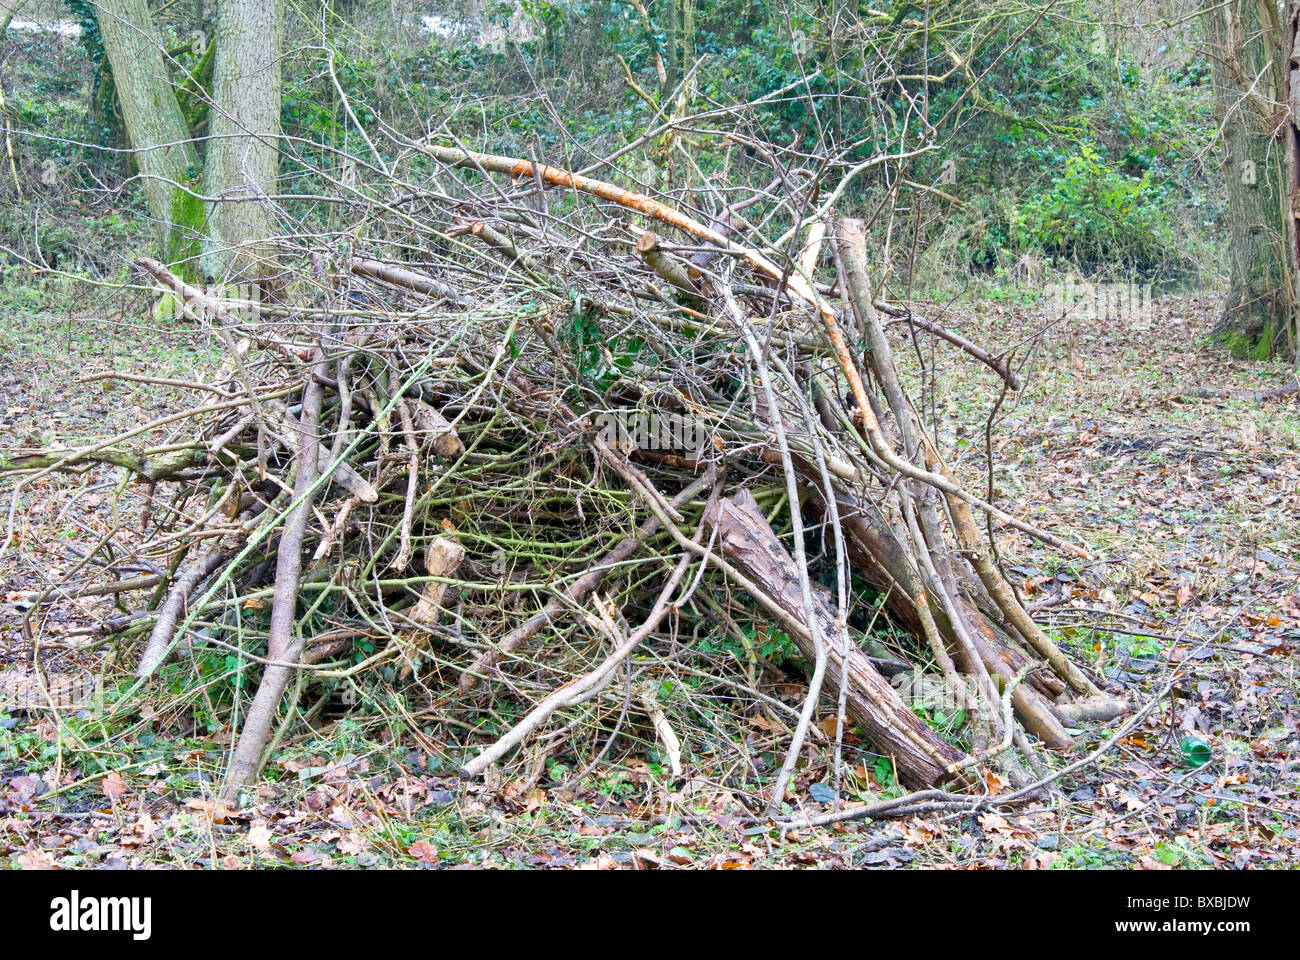 Pile of twigs and branches - Stock Image